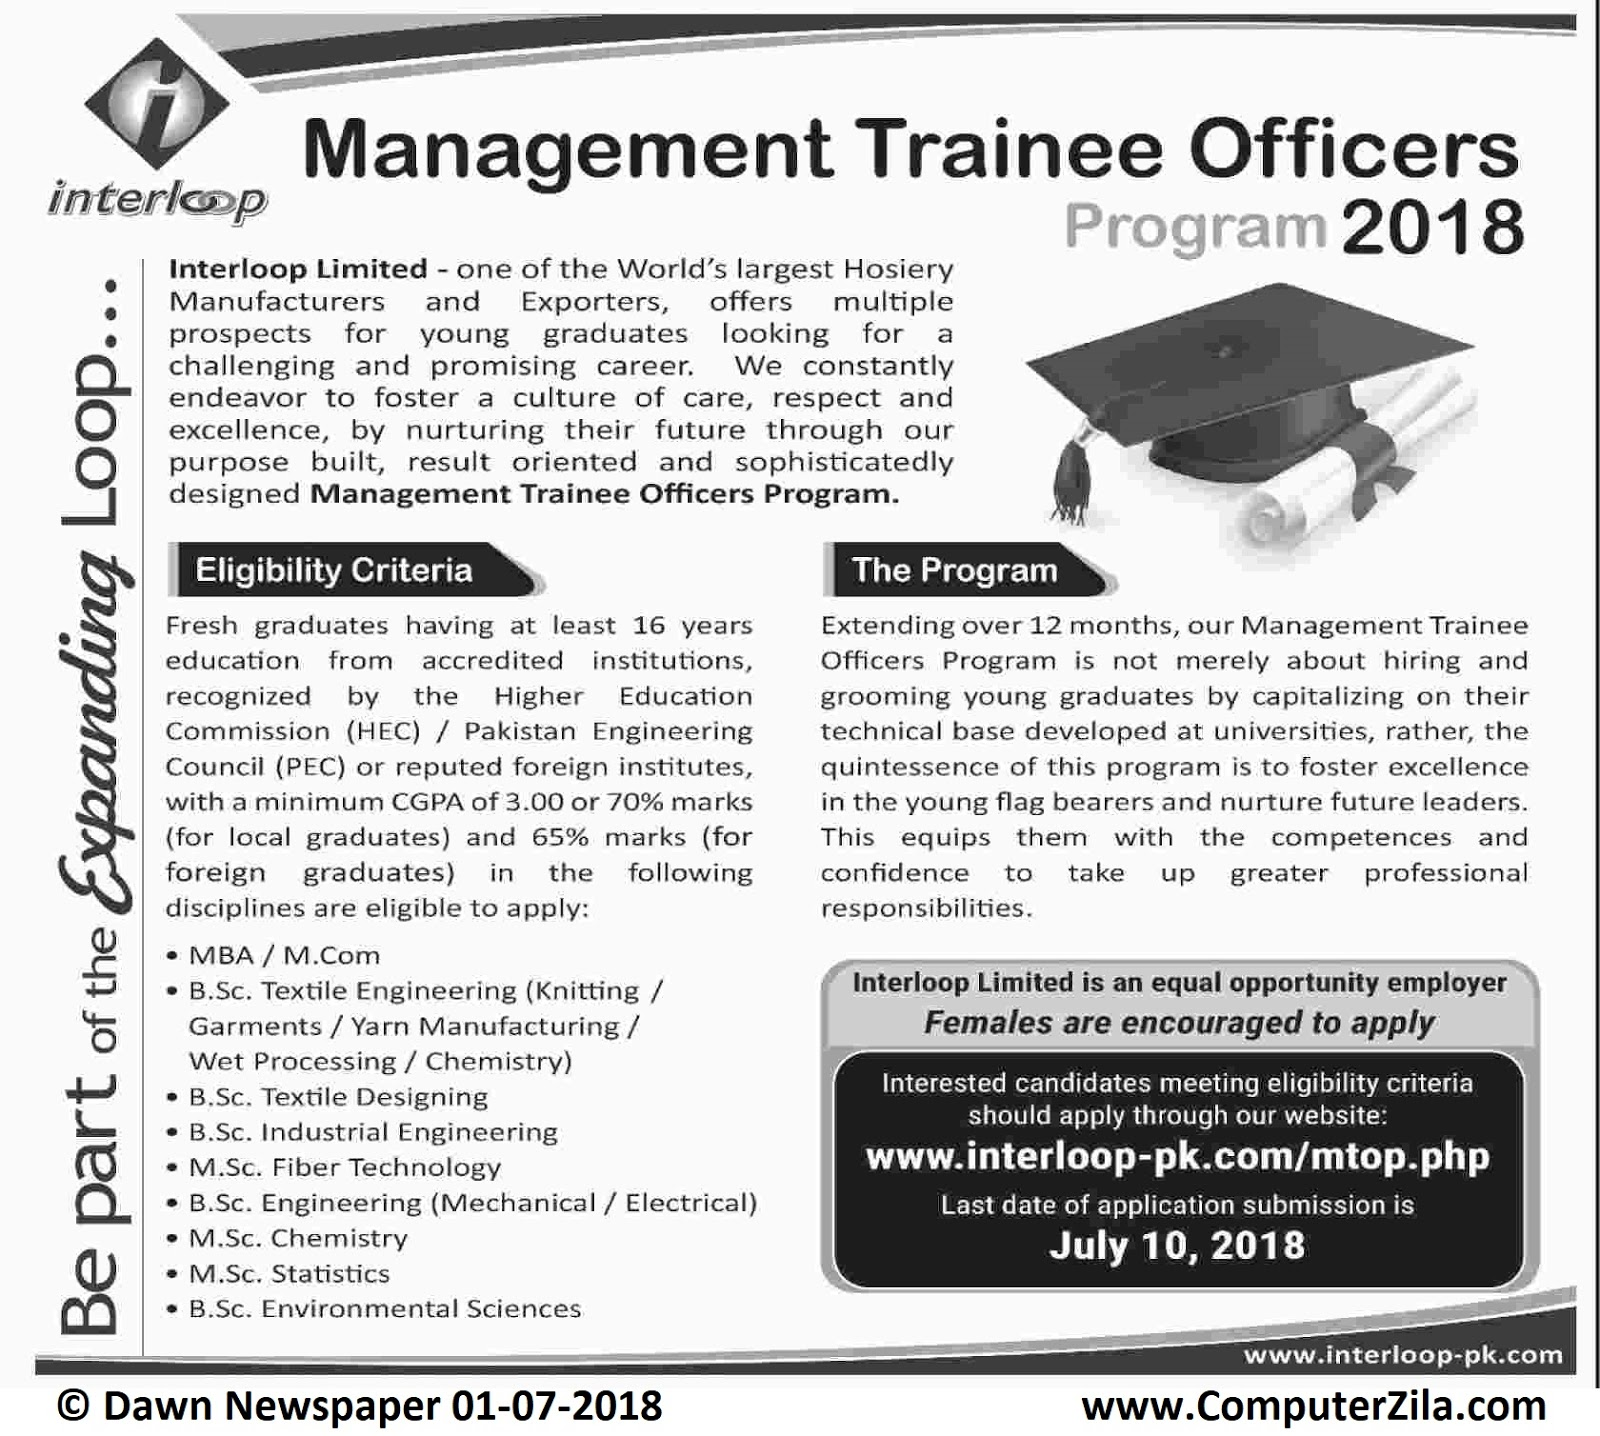 Management Trainee Officers Program 2018 at Interloop